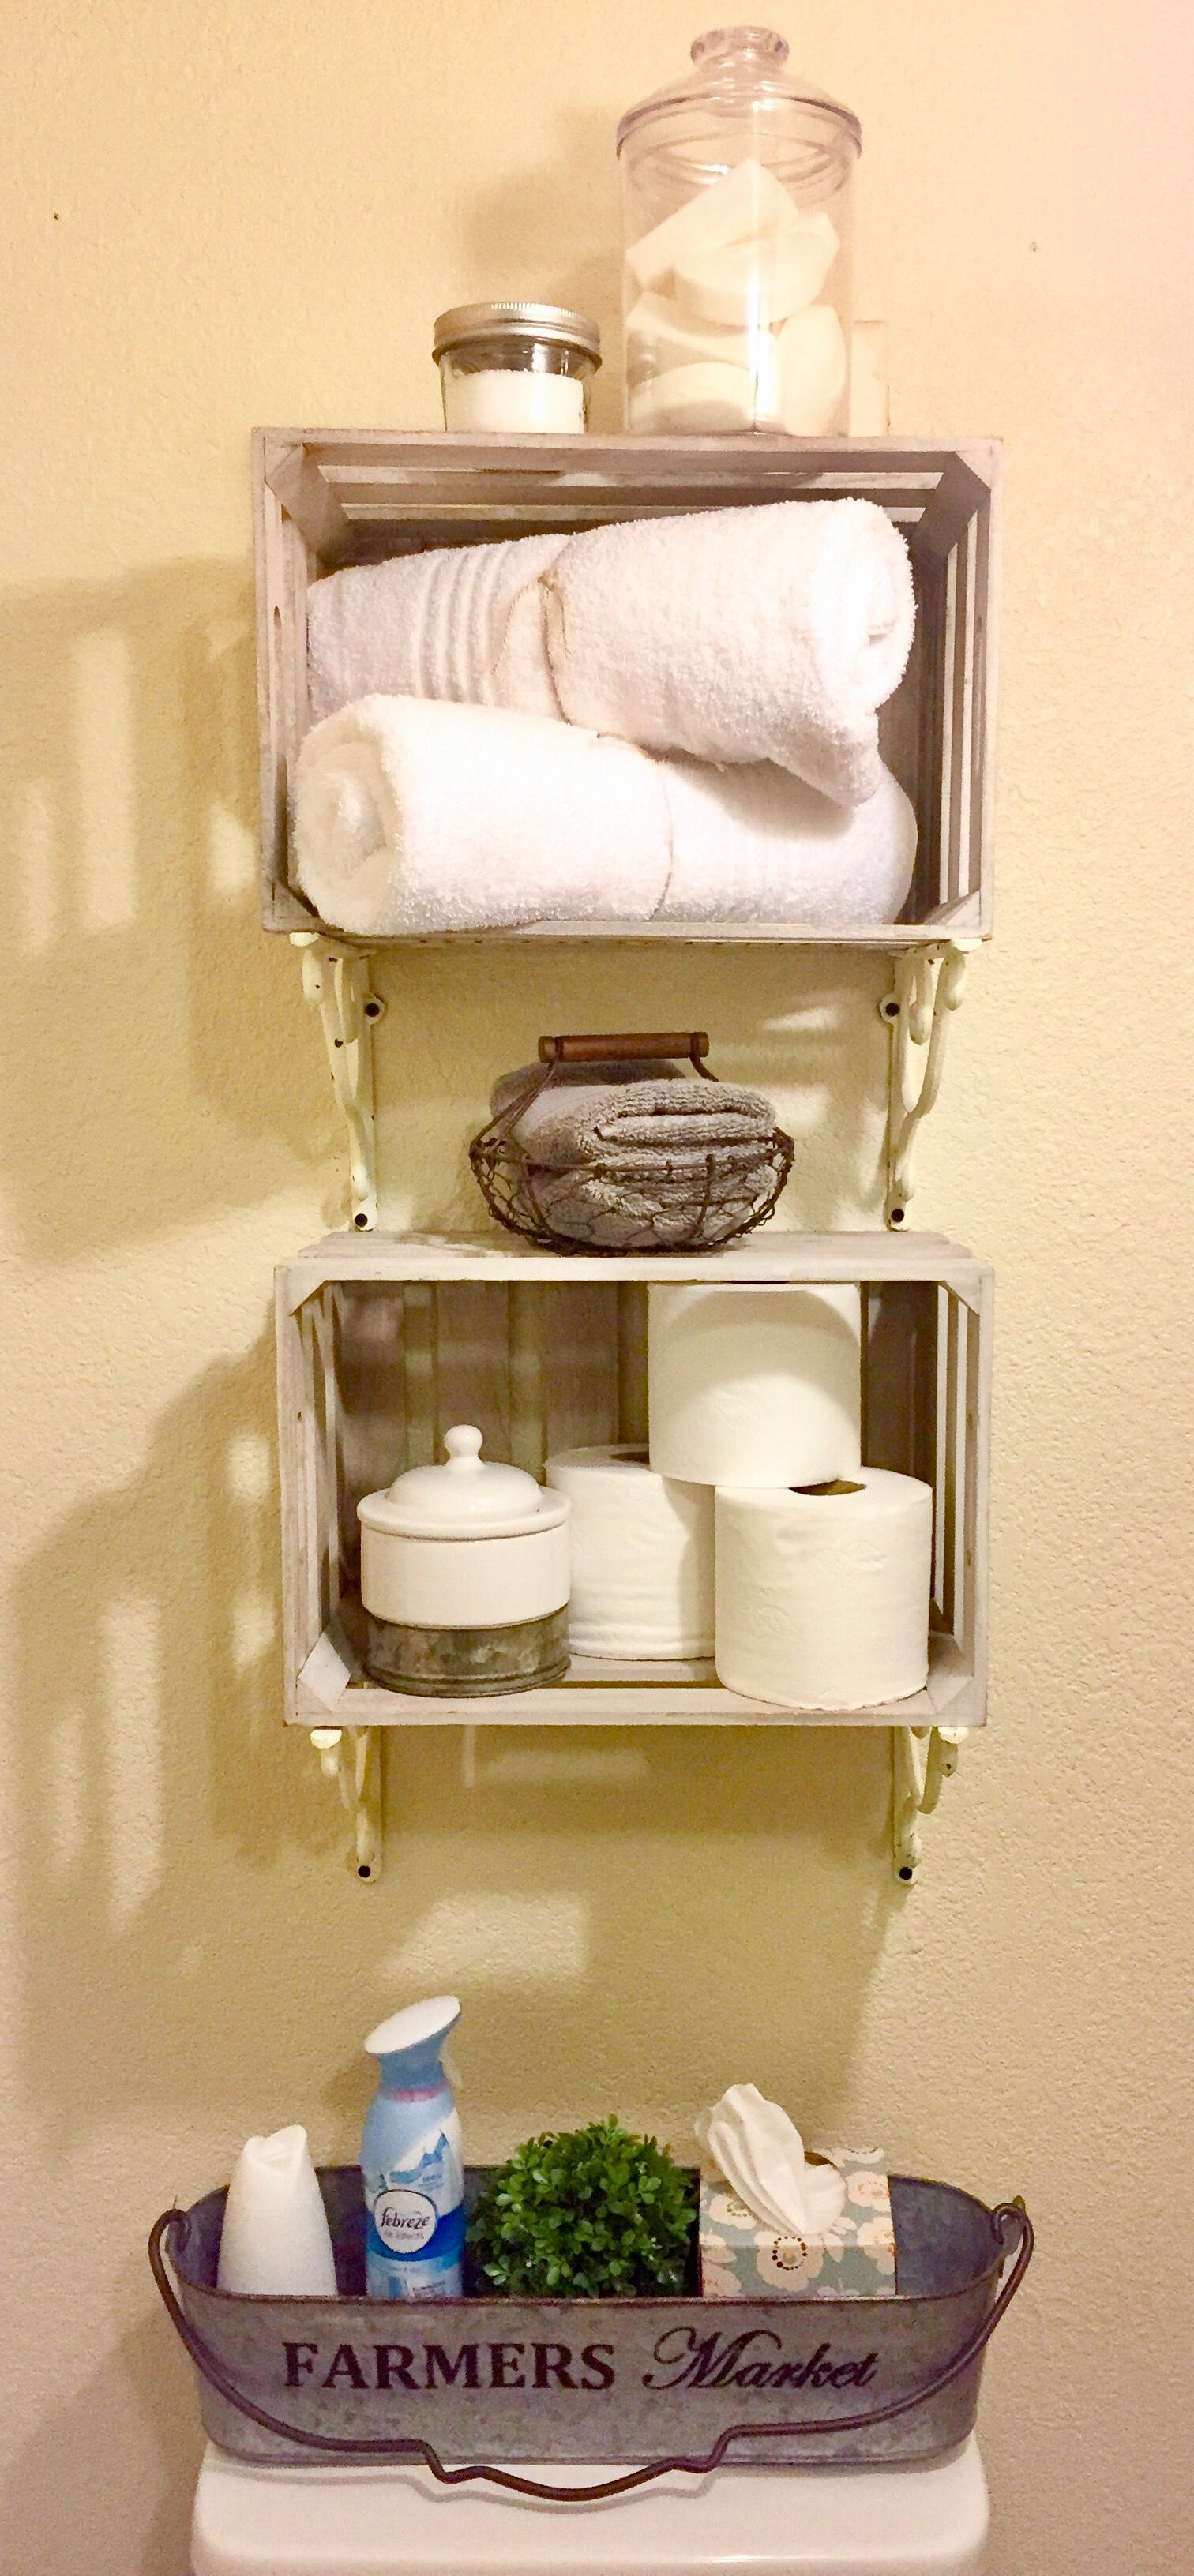 French country farmhouse bathroom storage shelves decor for Bathroom decor farmhouse